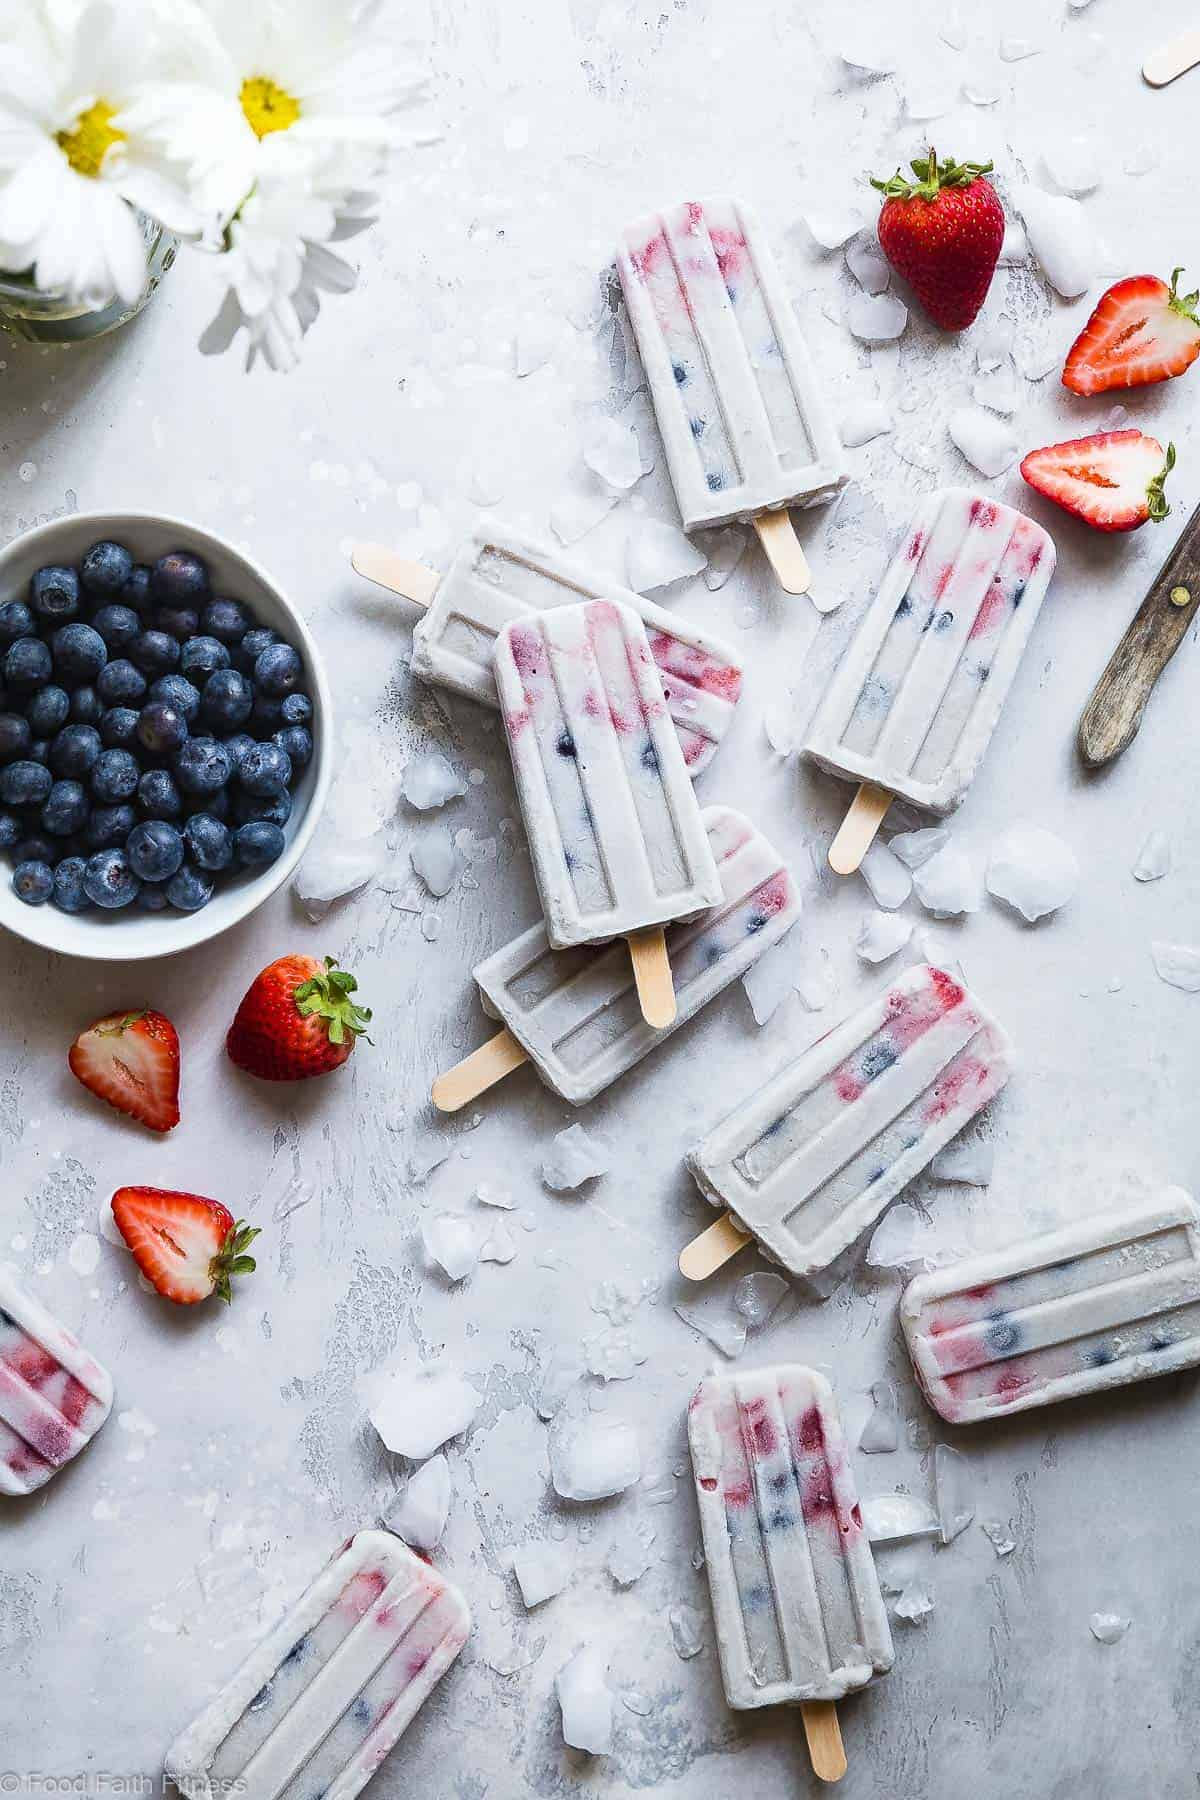 Red, White and Blueberry Paleo Banana Pudding Pops - These easy, healthy homemade pudding pops are perfect for the Fourth of July or anytime in the Summer! SO easy and gluten free and paleo/vegan friendly! Kids and adults will LOVE these! | #Foodfaithfitness | #Glutenfree #Healthy #Paleo #Vegan #July4th